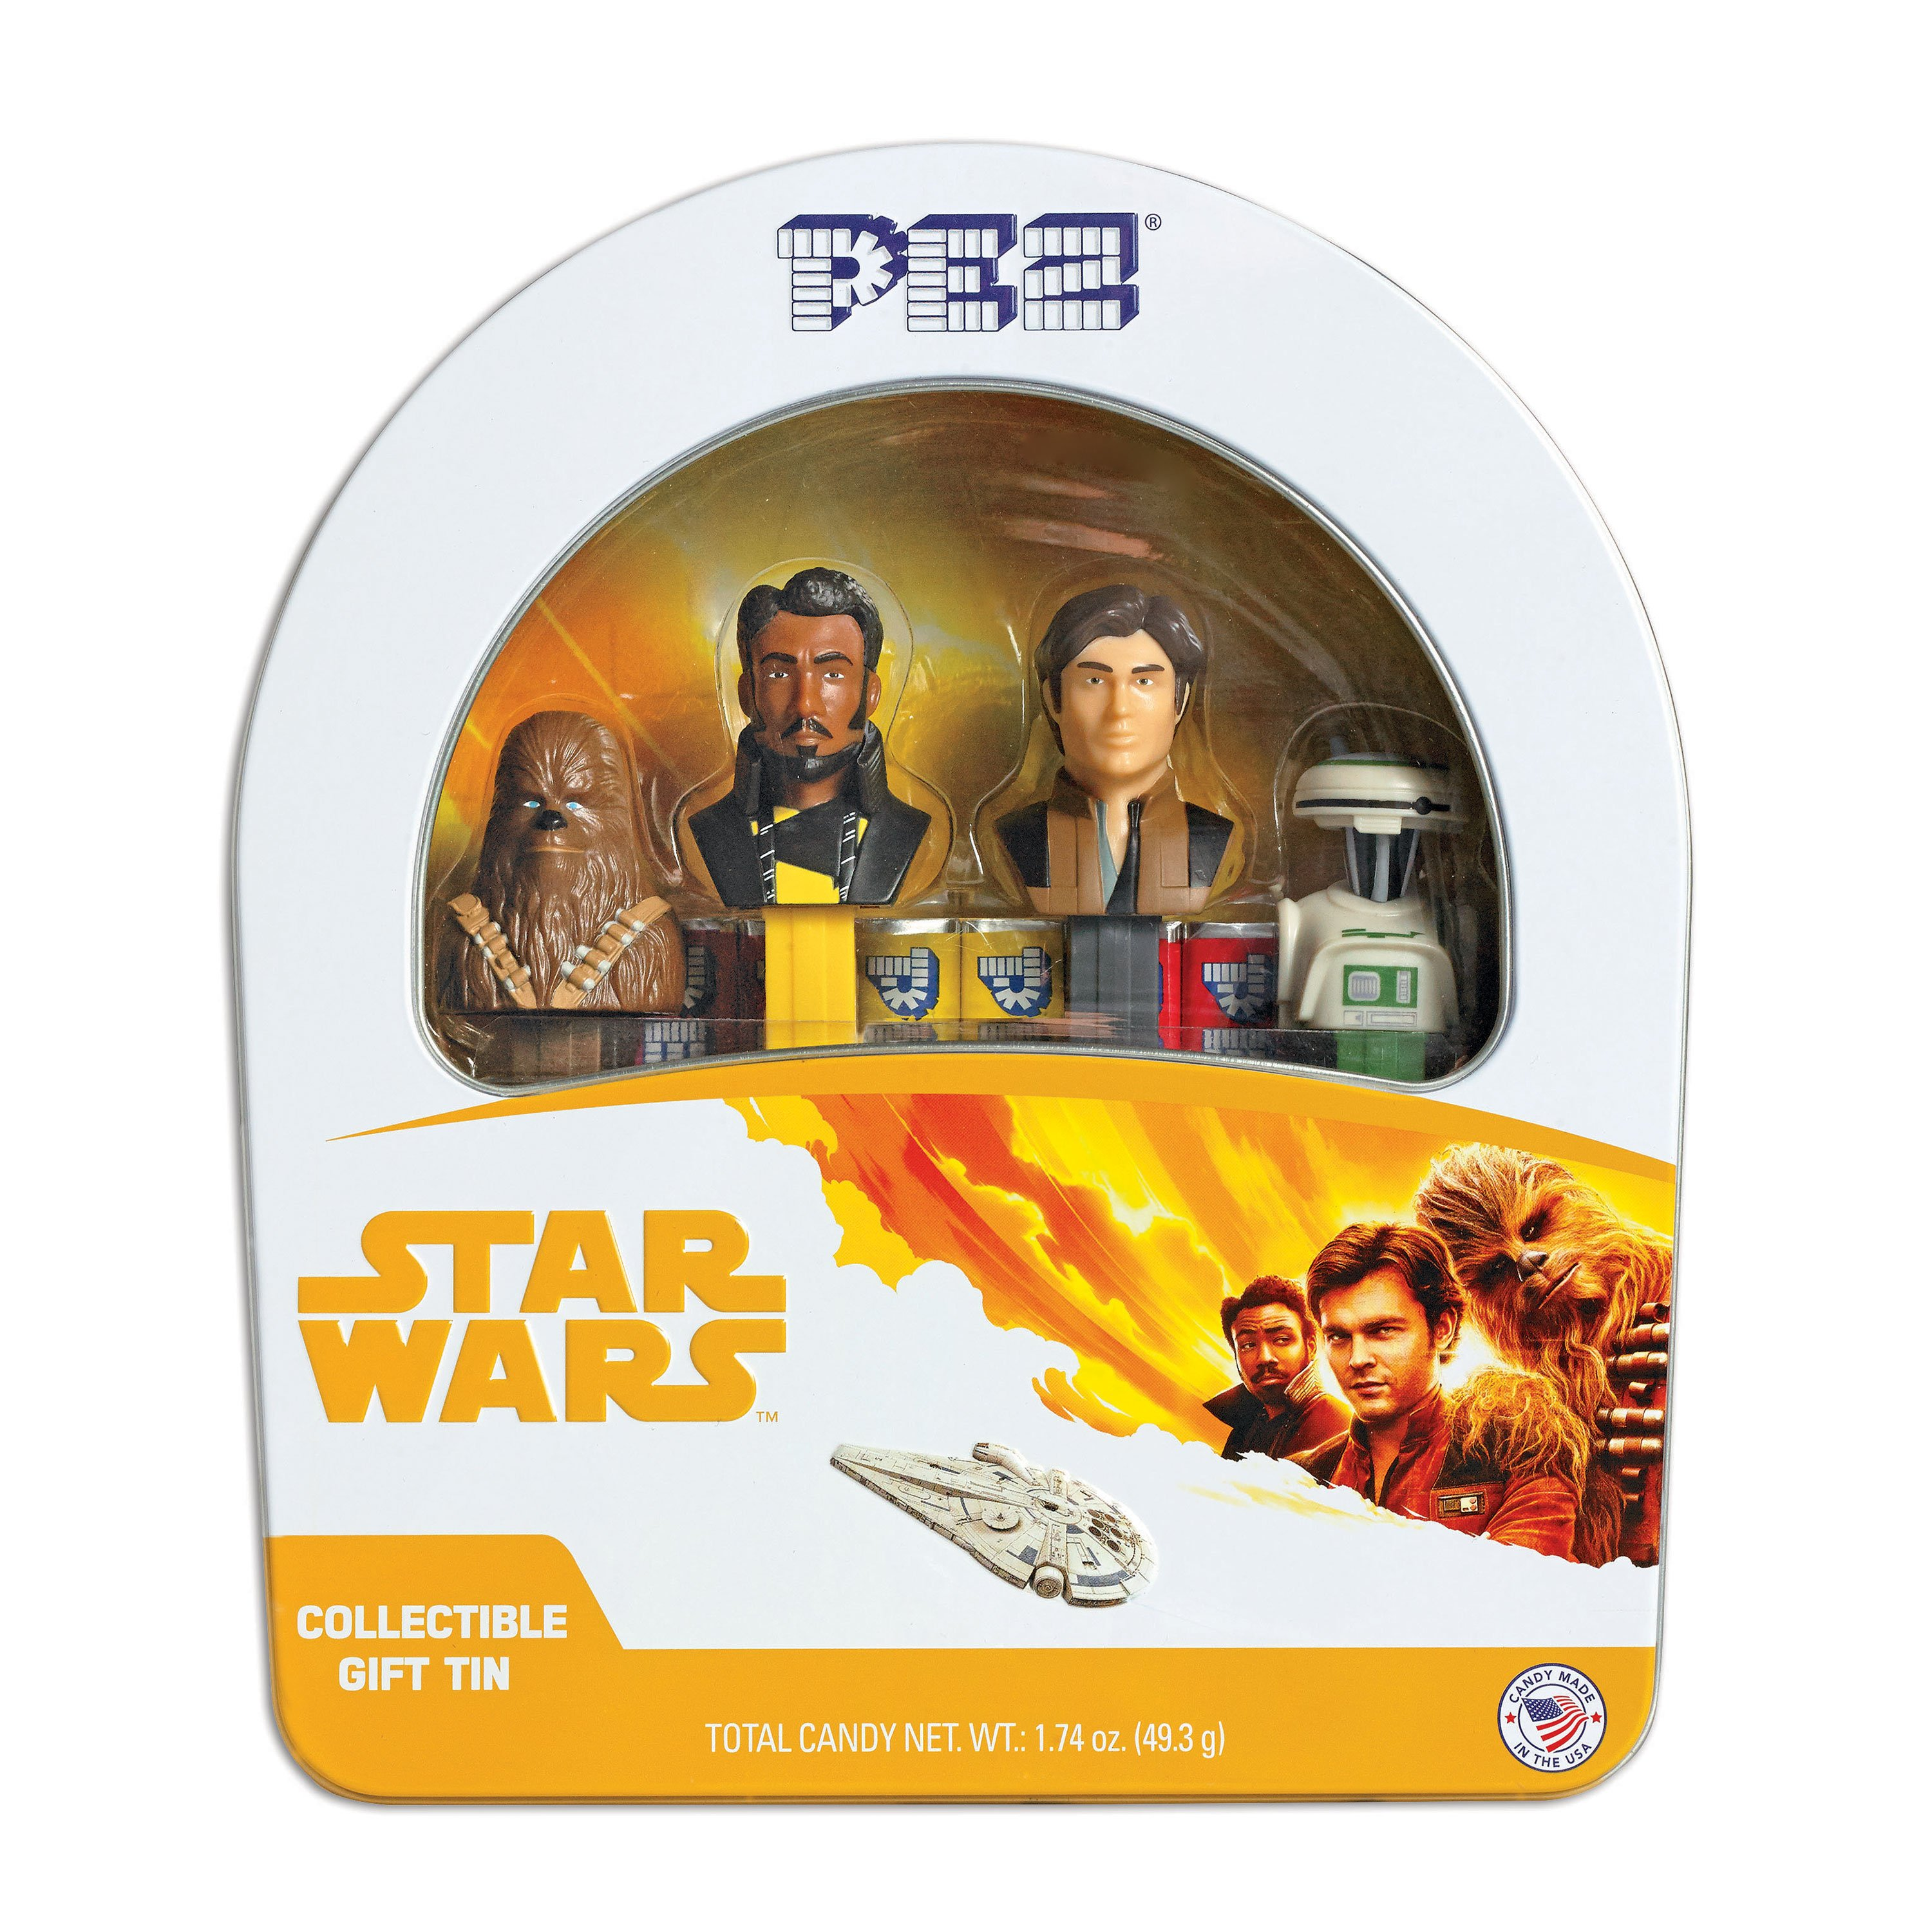 PEZ Candy Star Wars Han Solo Gift Tin with 4 Candy Dispensers + 6 Rolls of Candy